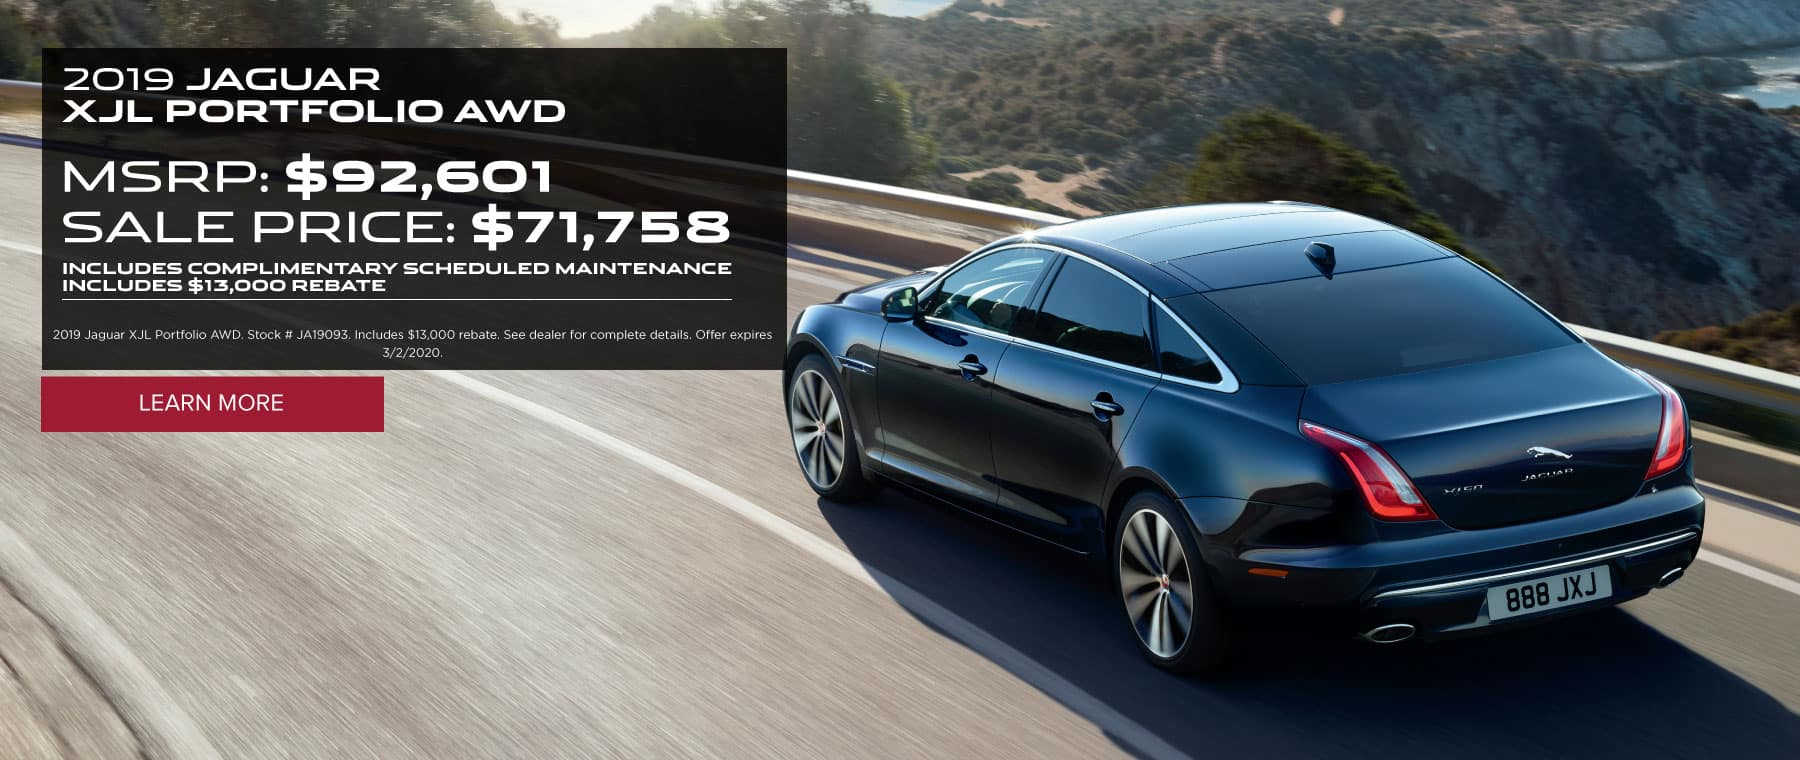 2019 JAGUAR XJL PORTFOLIO AWD. MSRP: $92,601 SALE PRICE: $71,758. INCLUDES COMPLIMENTARY SCHEDULED MAINTENANCE INCLUDES $13,000 REBATE. 2019 Jaguar XJL Portfolio AWD. Stock # JA19093. Includes $13,000 rebate. See dealer for complete details. Offer expires 3/2/2020. Click to learn more. Dark blue XJL on bridge